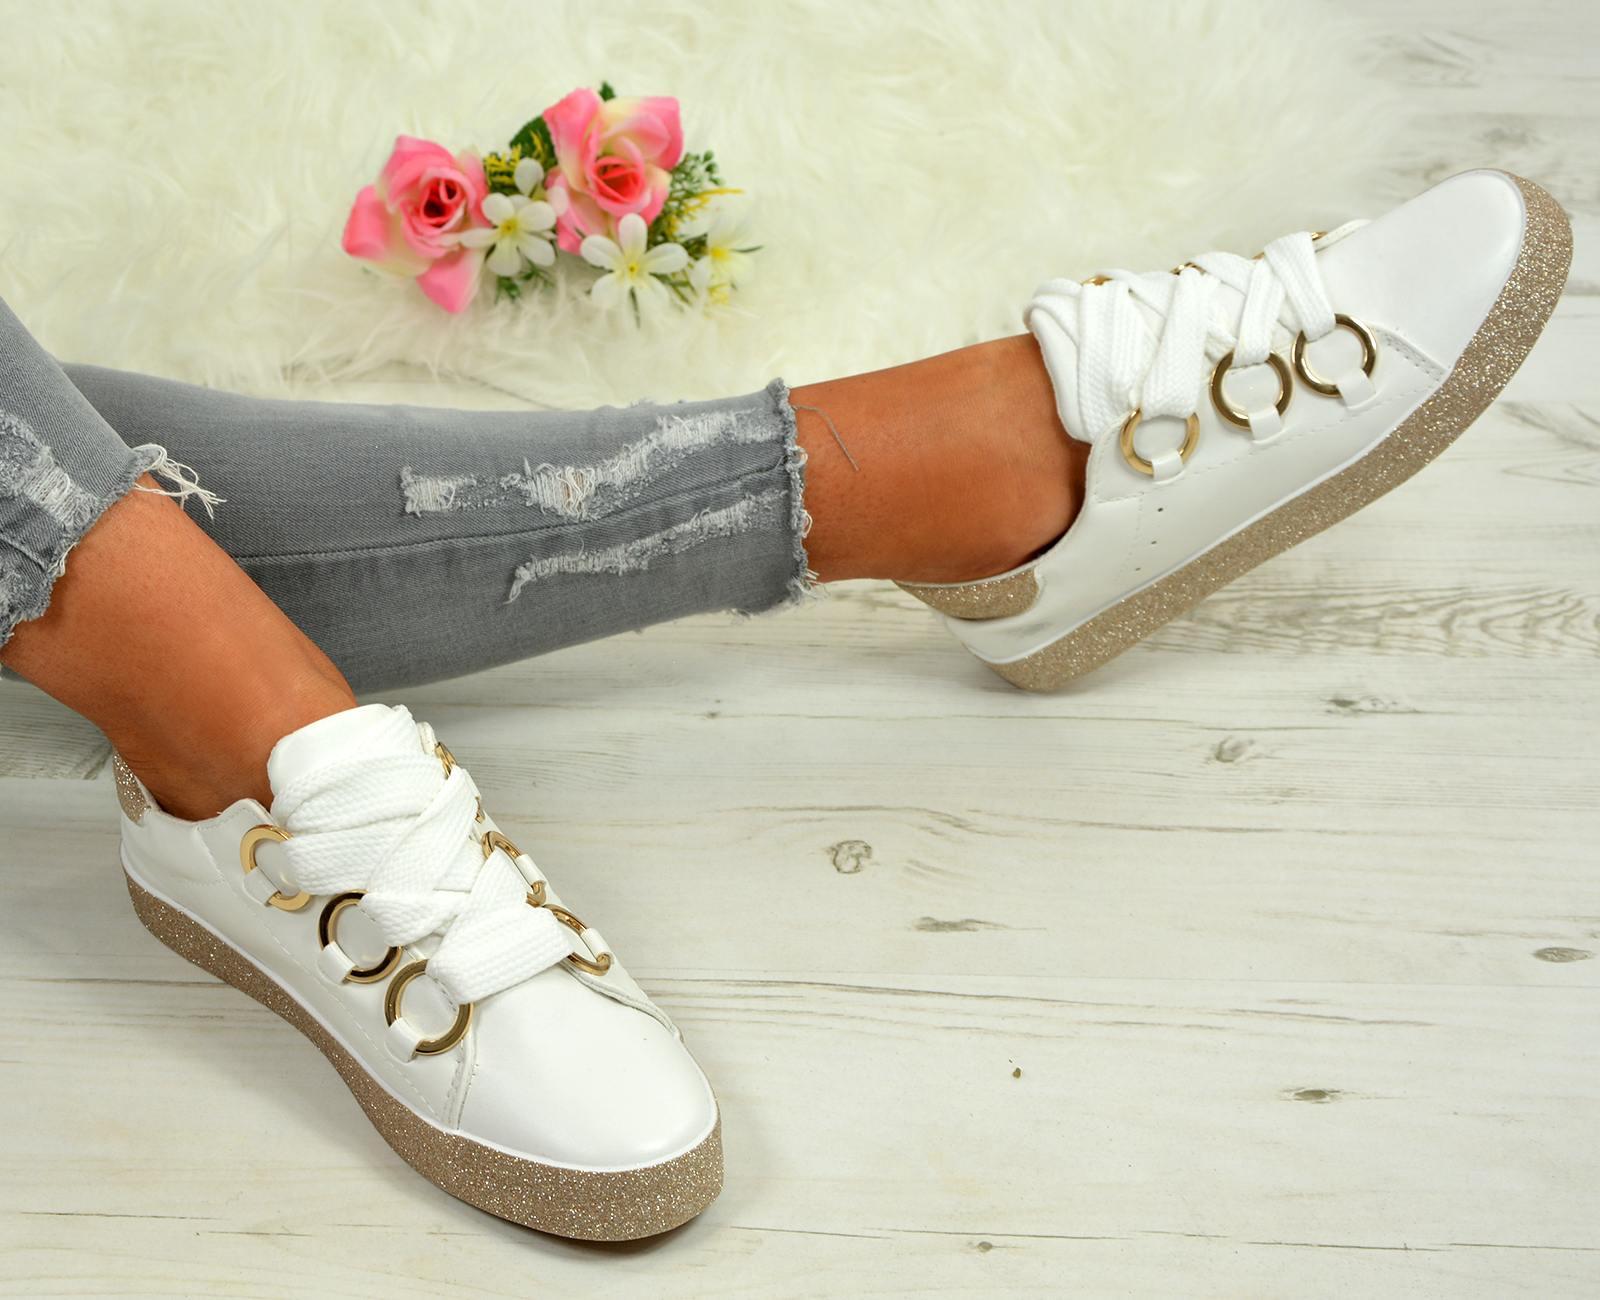 LADIES-WOMENS-GLITTER-SNEAKERS-SPARKLE-TRAINERS-LACE-UP-PLIMSOLL-PUMPS-SHOES thumbnail 19